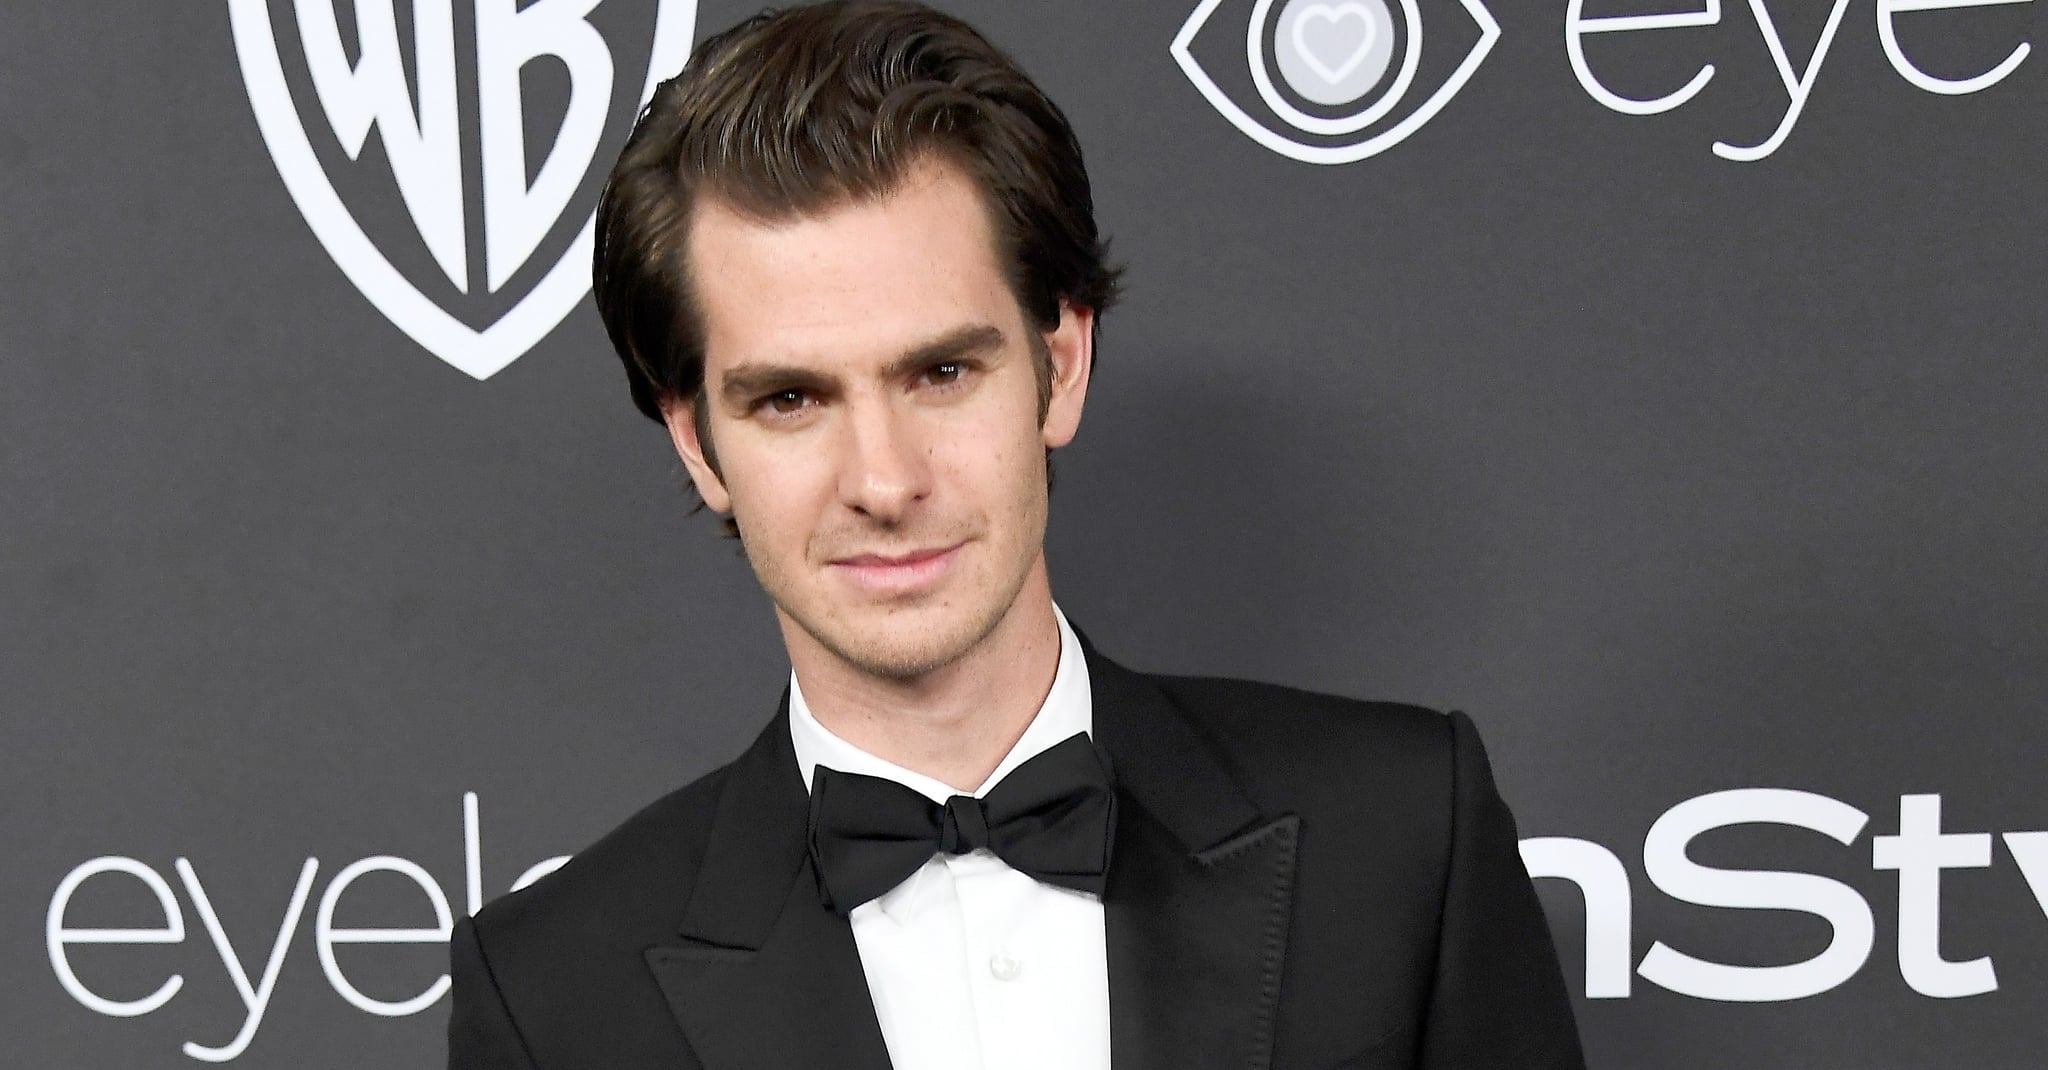 Hollywood Has a New Couple: Andrew Garfield and Susie Abromeit!